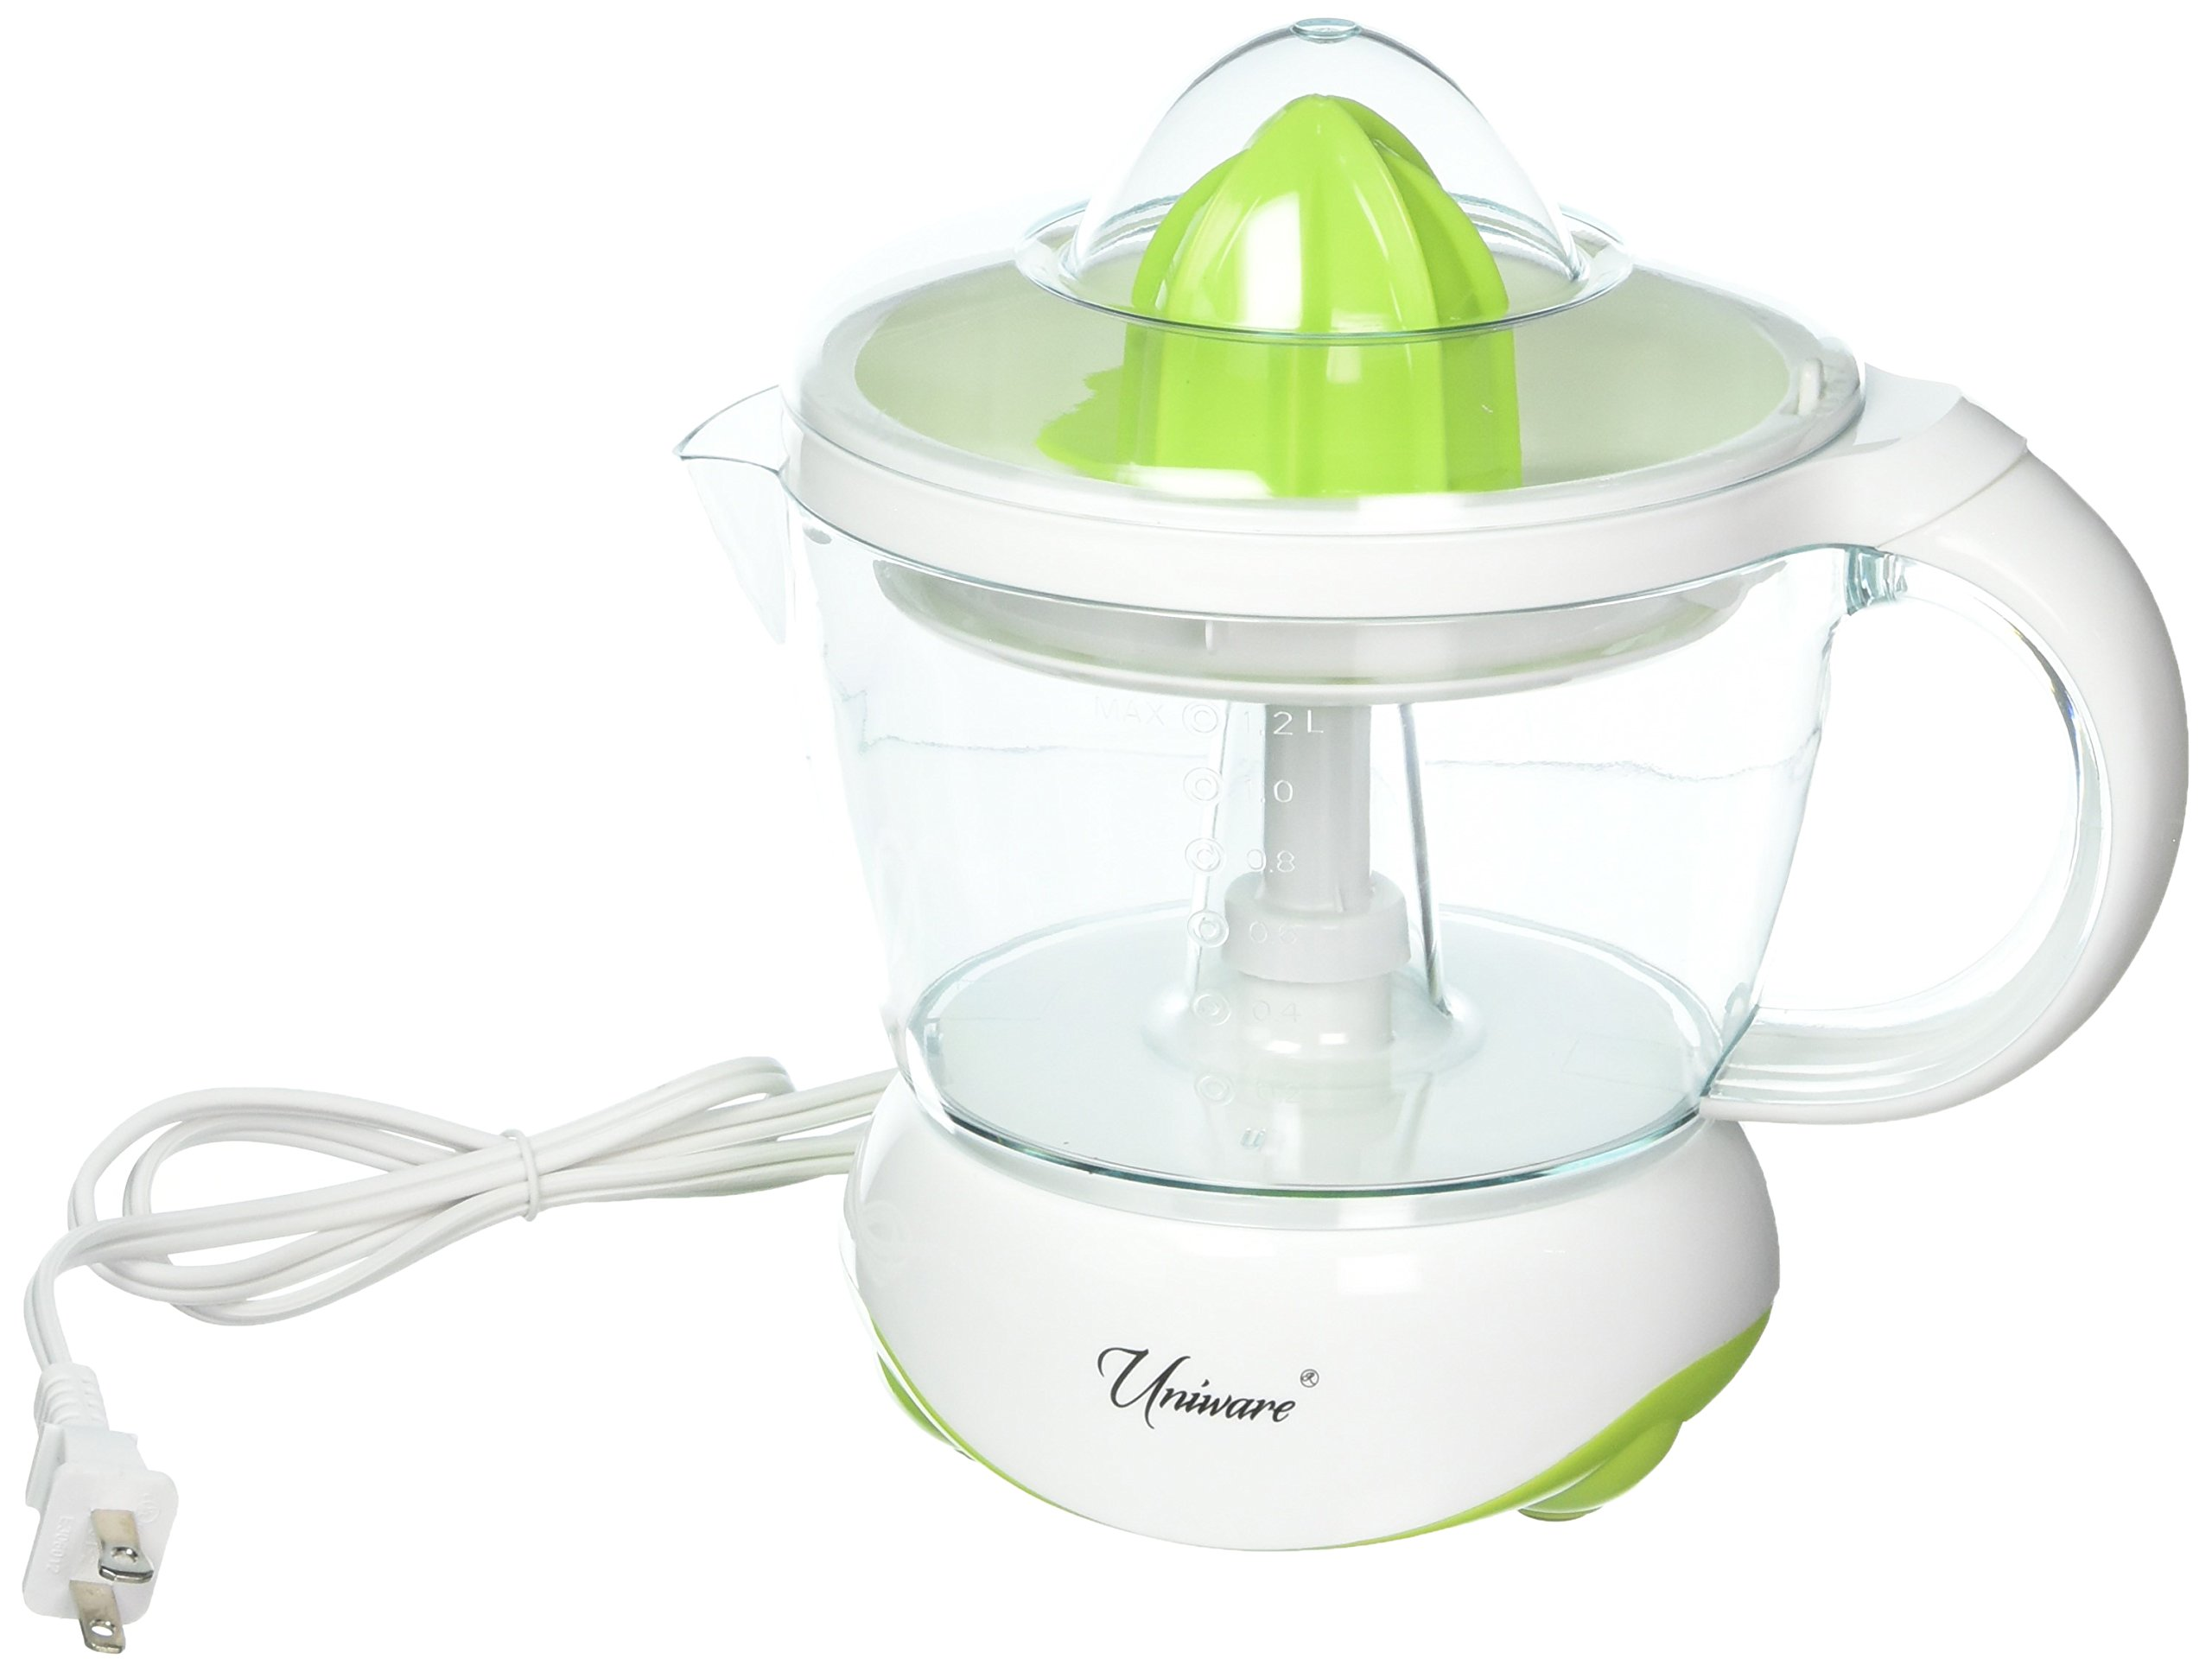 Uniware 8701GR 1.2L Electric Citrus Juicer, Make Fresh and Delicious Juice at Home!